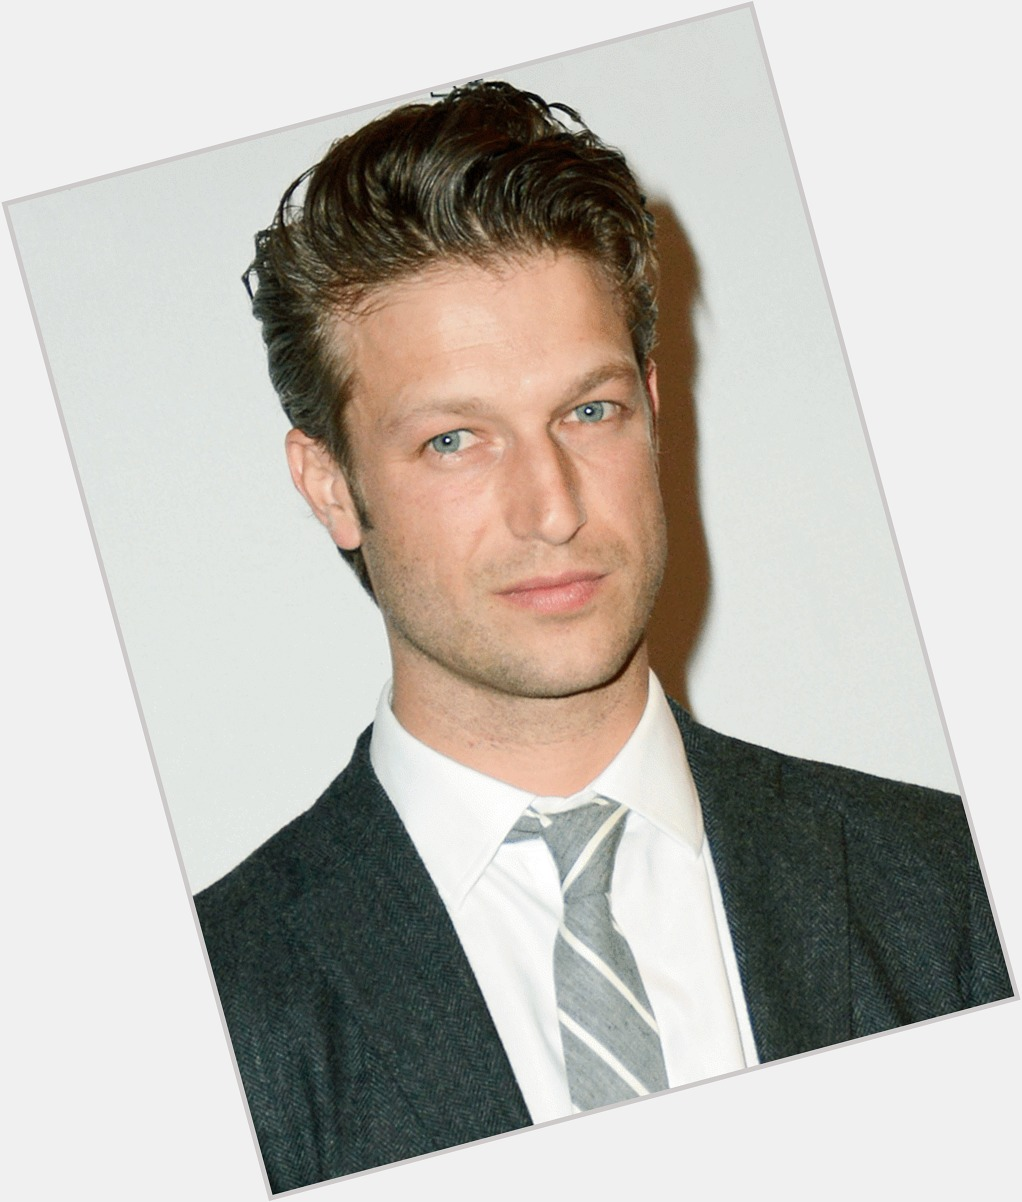 Peter Scanavino picture 1.jpg